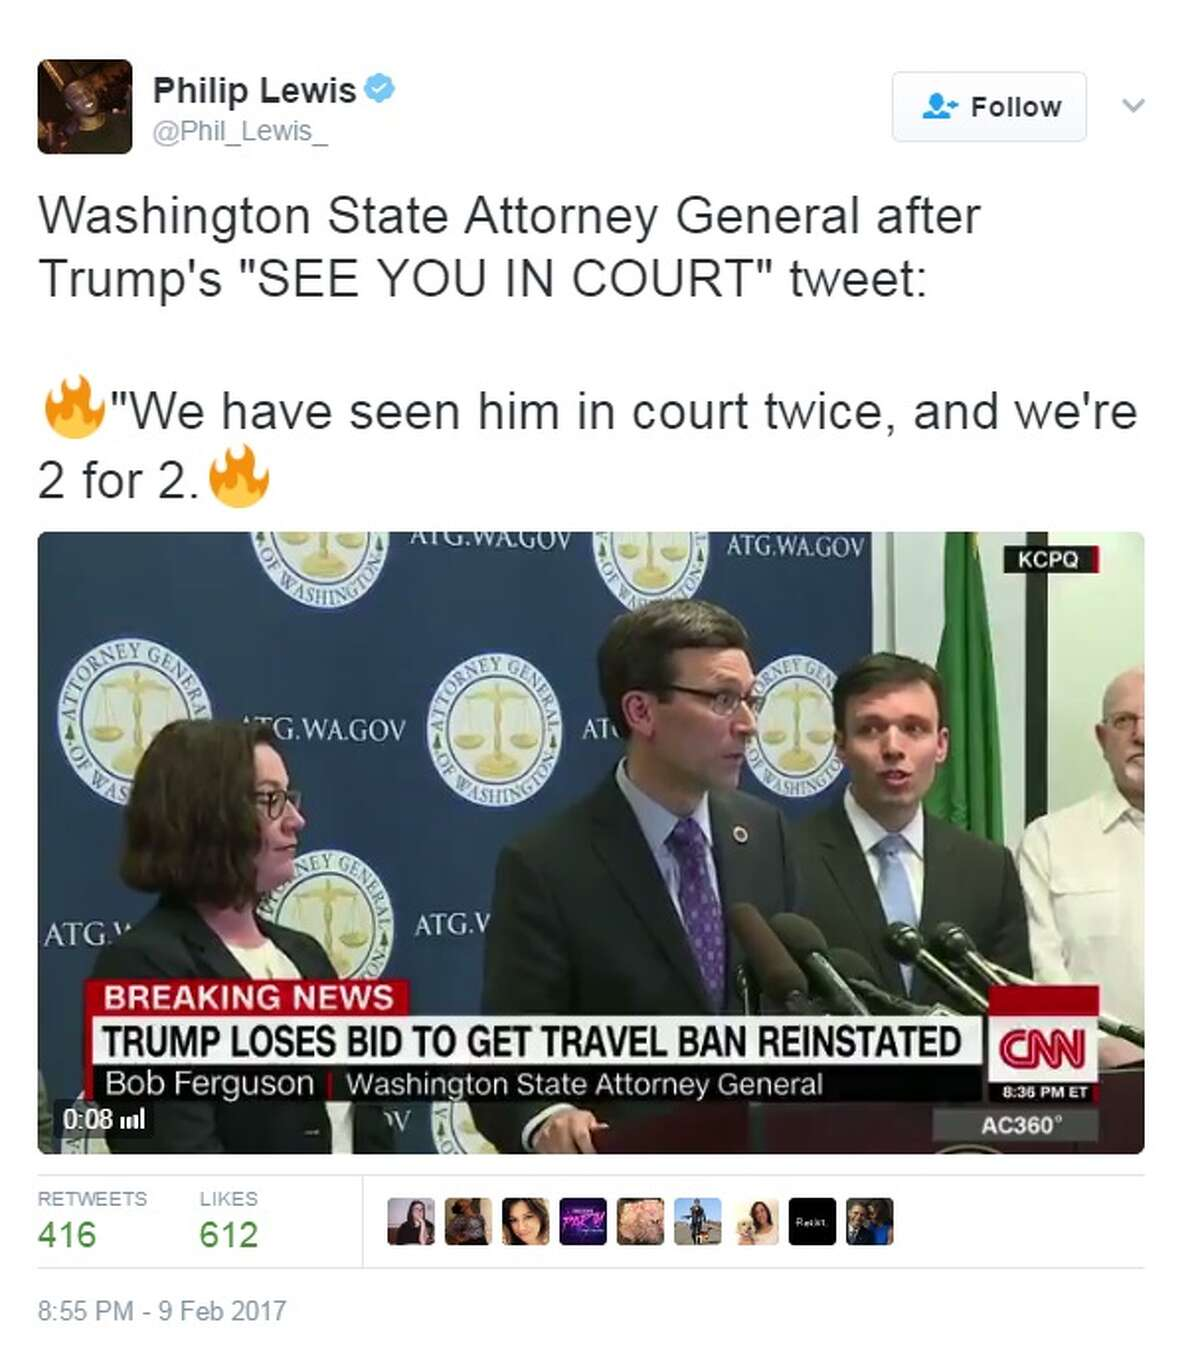 A federal appeals court refused to reinstate President Donald Trump's ban on travelers on Feb. 9, 2017. Trump and others had a variety of reactions to the decision on social media. Image source:Twitter